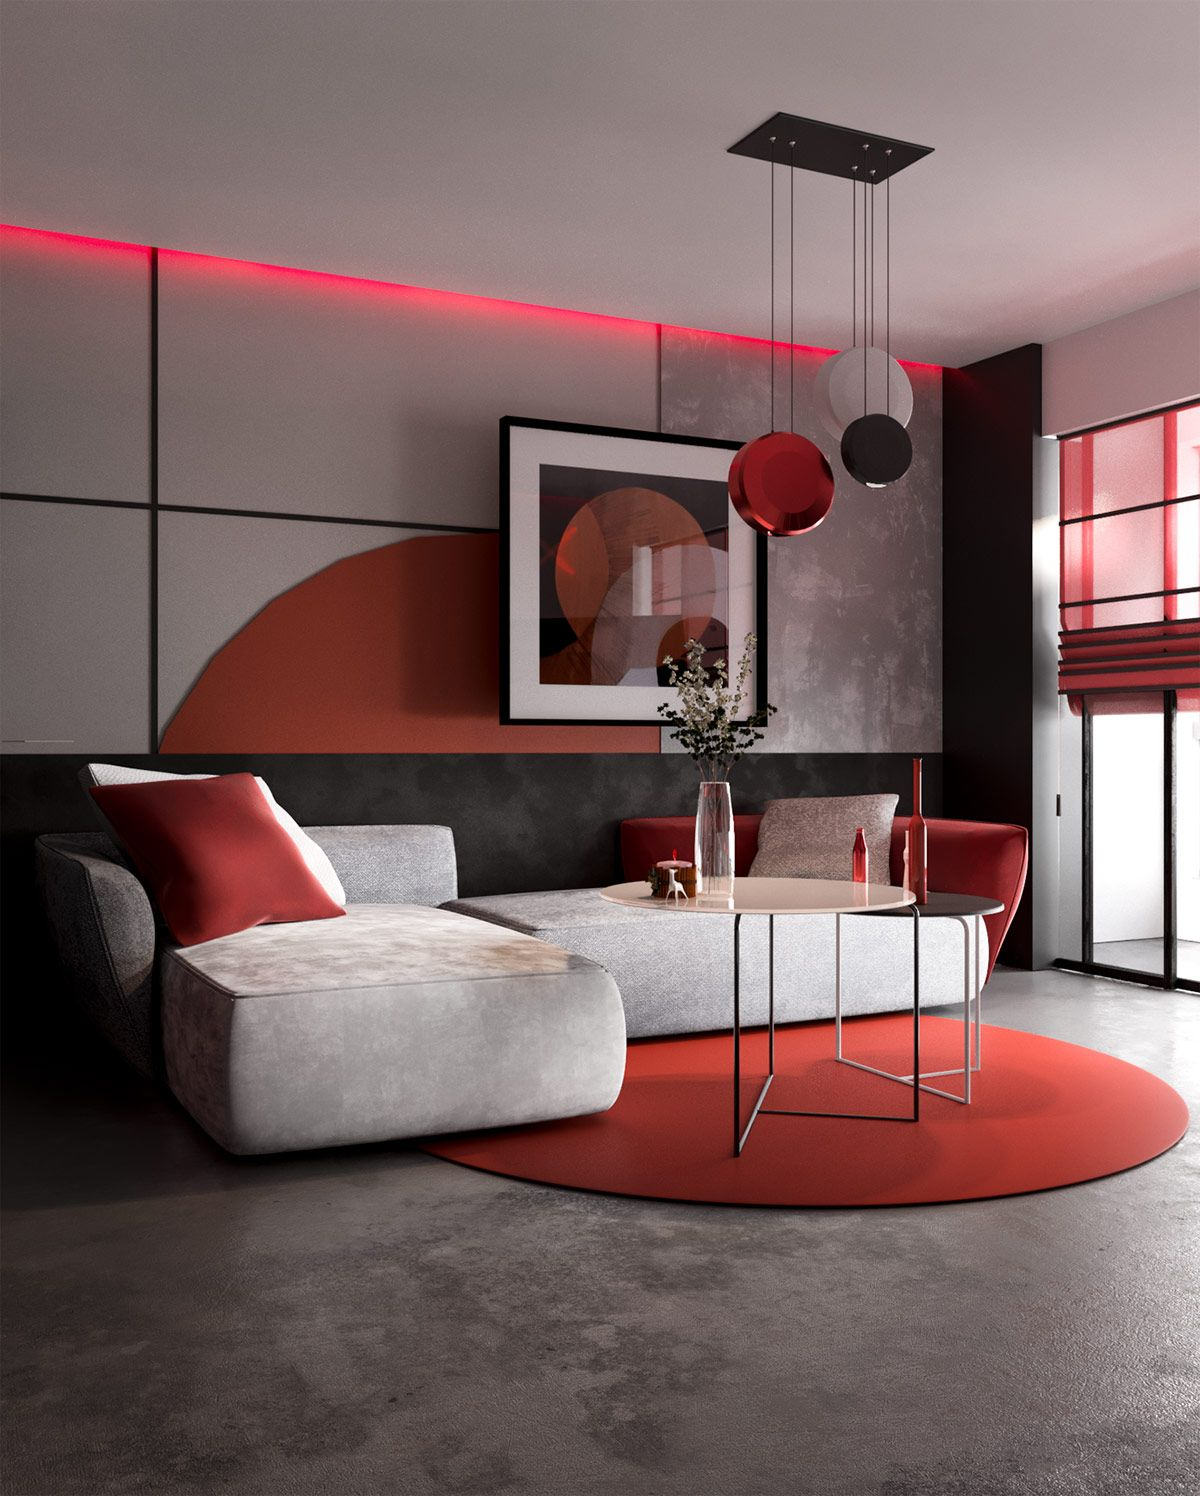 Modern Red And Grey Interiors With Japanese Influences Living Room Red Living Room Decor Gray Asian Interior Design #red #wall #living #room #ideas